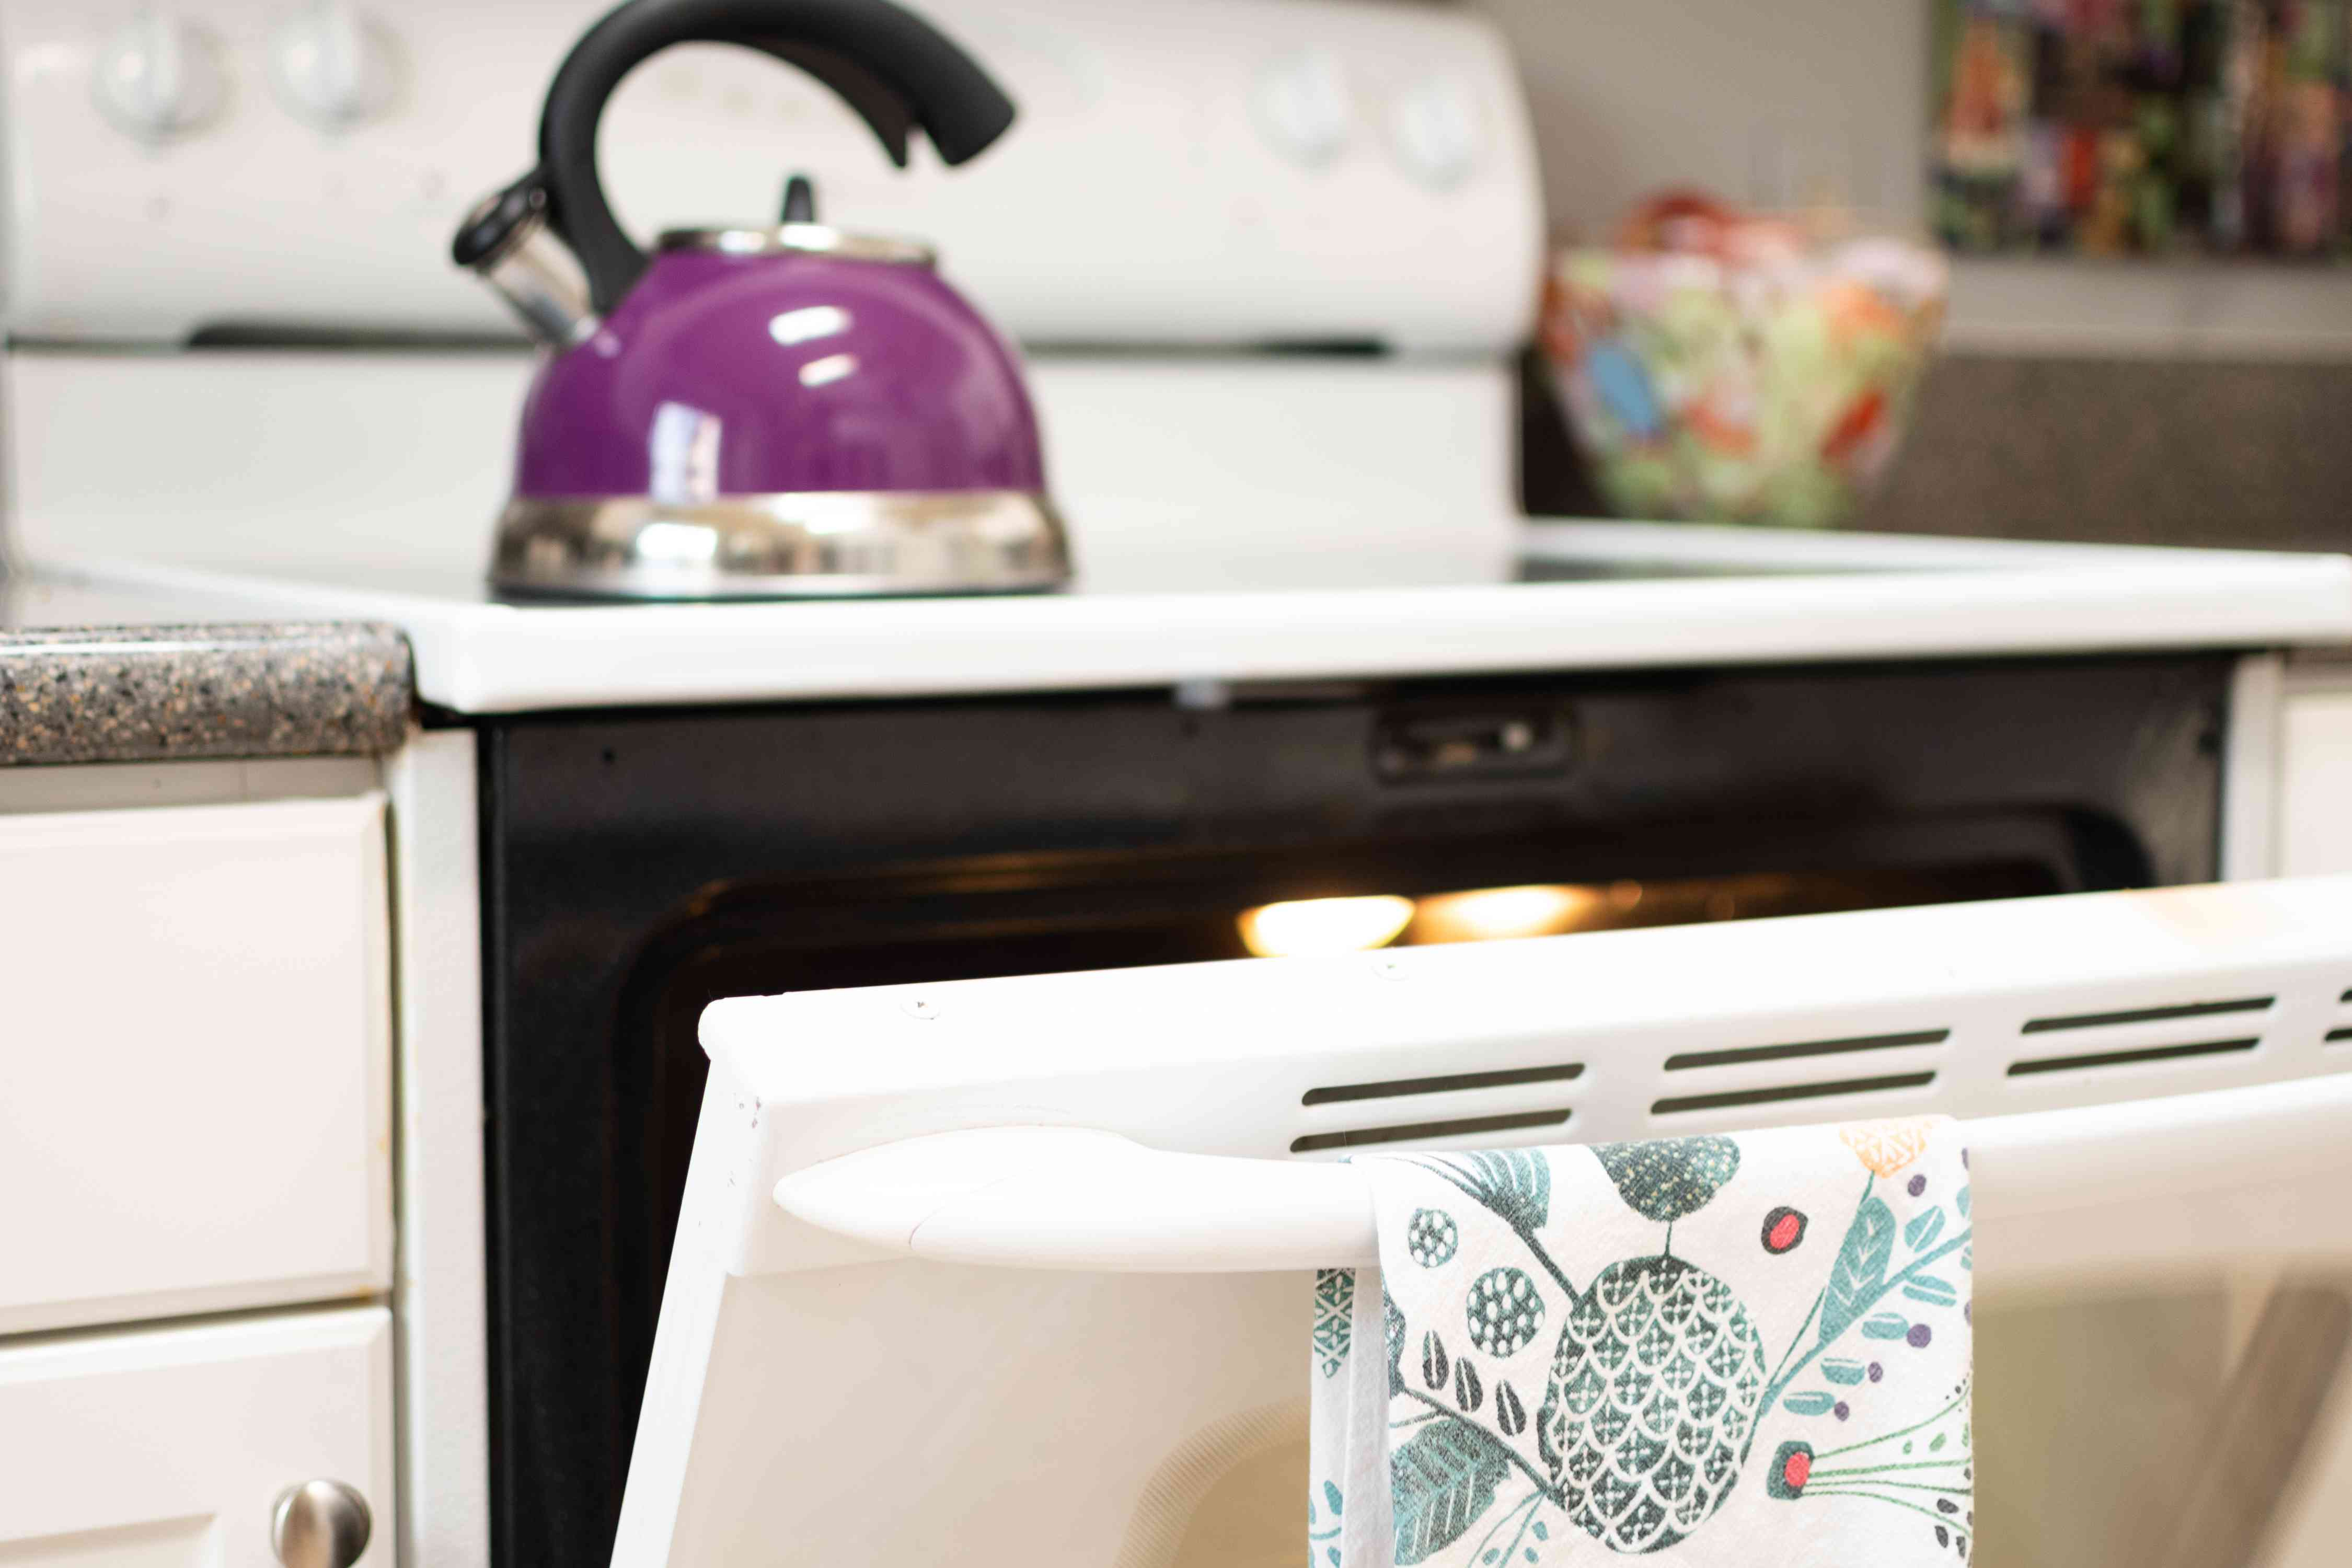 Oven door open with patterned towel hanging and purple teapot on top of stove